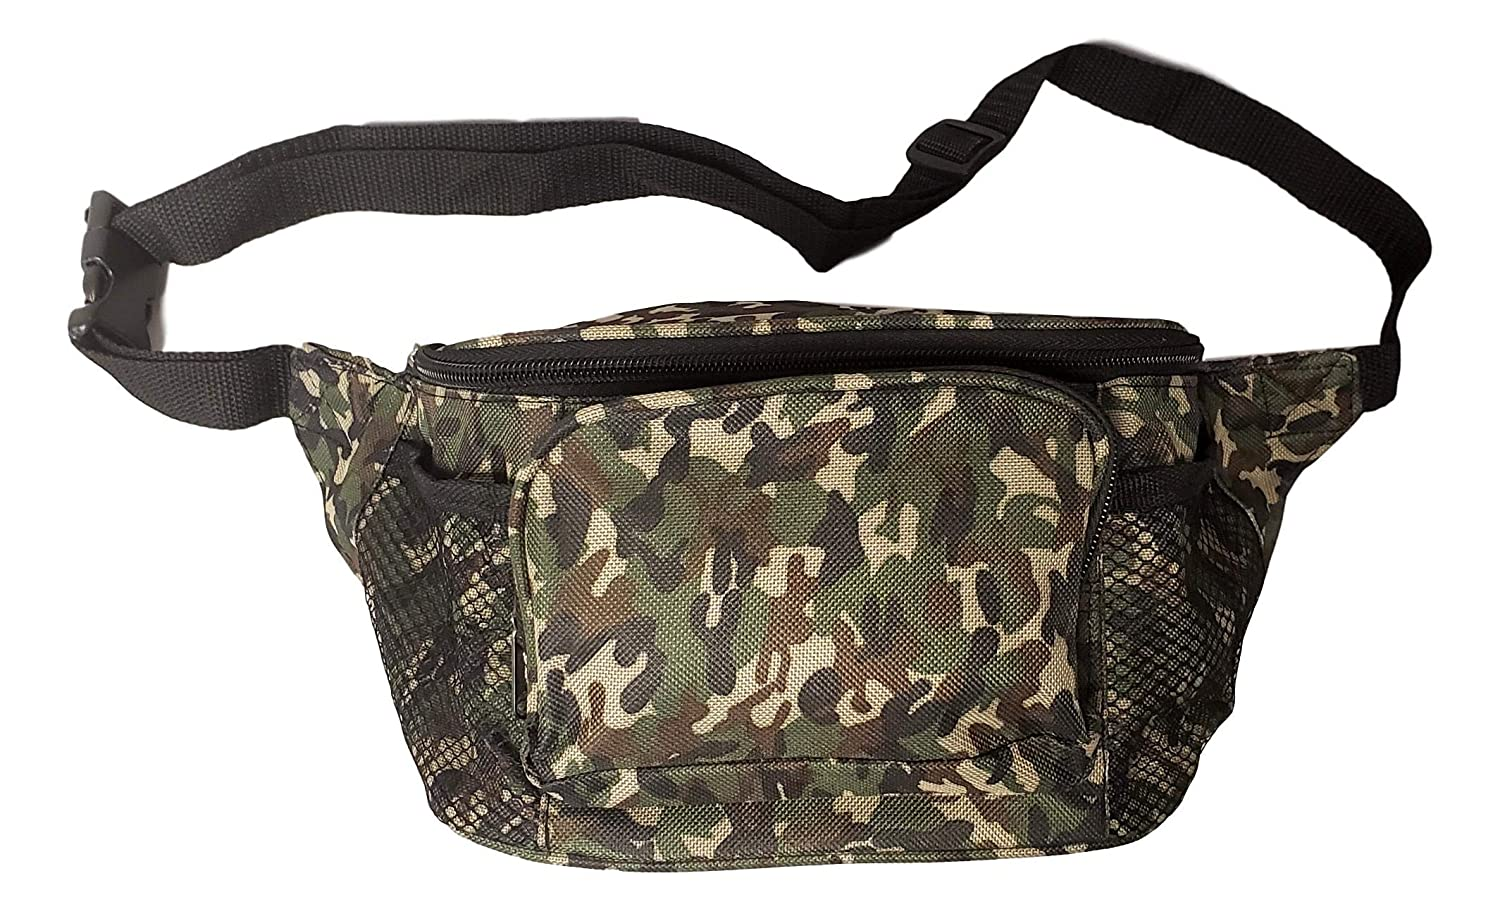 KNOX G DESIGNS Mens Basic Travel Fanny Pack Waist Bag in Solids and Camo